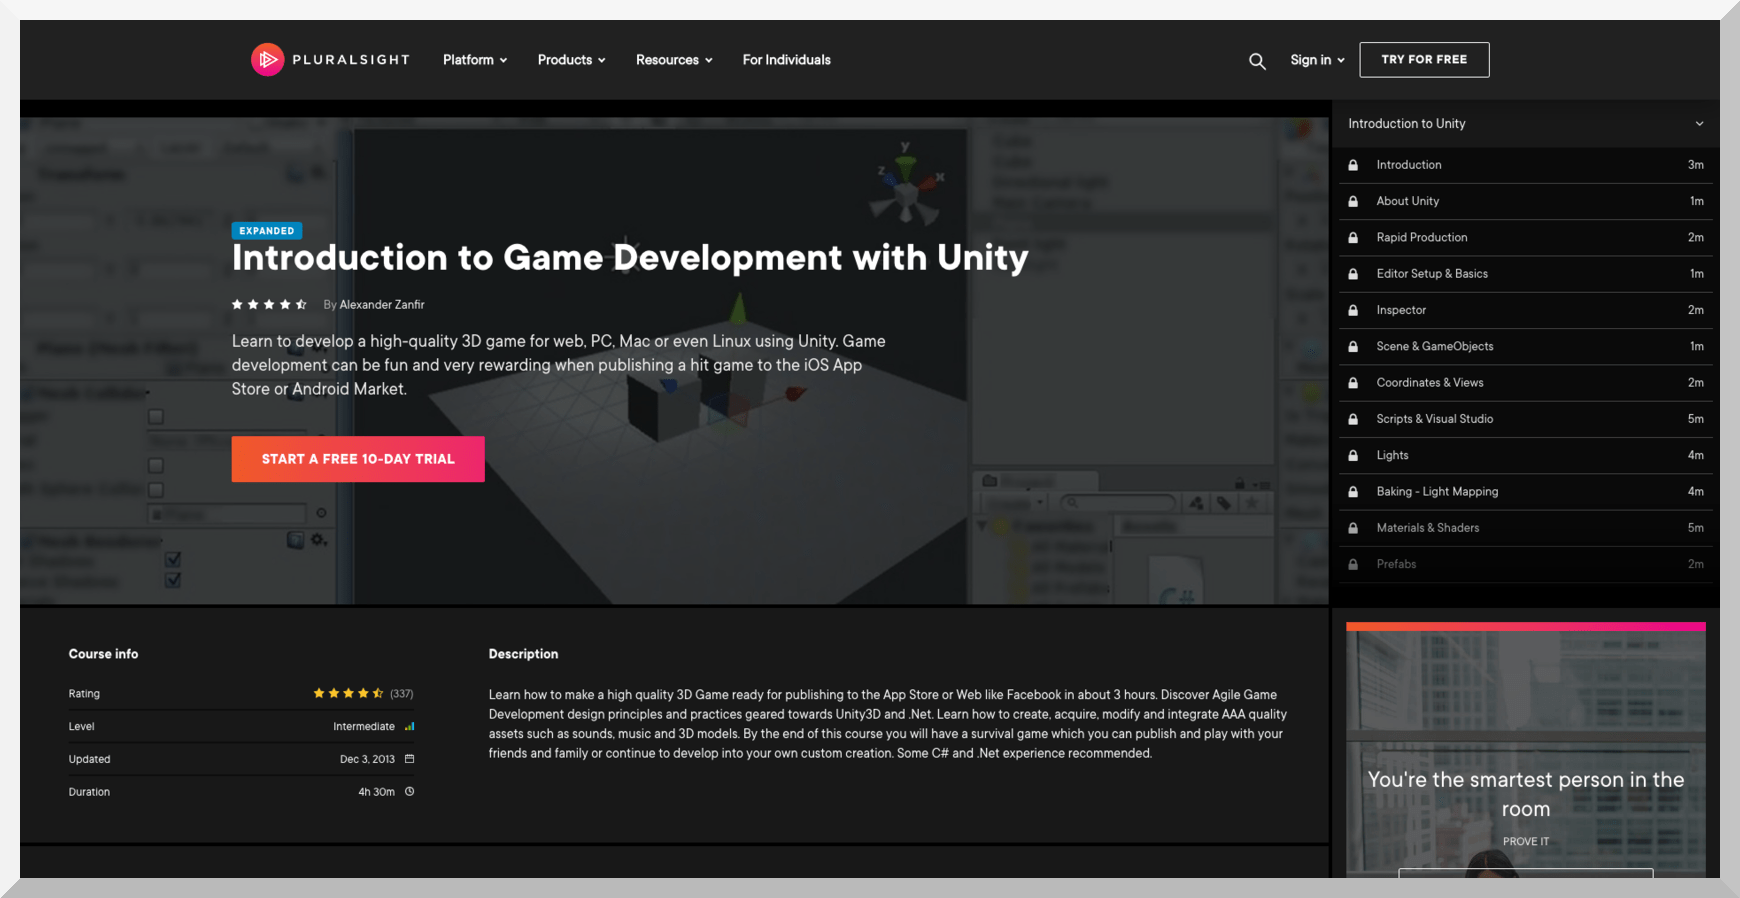 Introduction to Game Development with Unity – Pluralsight